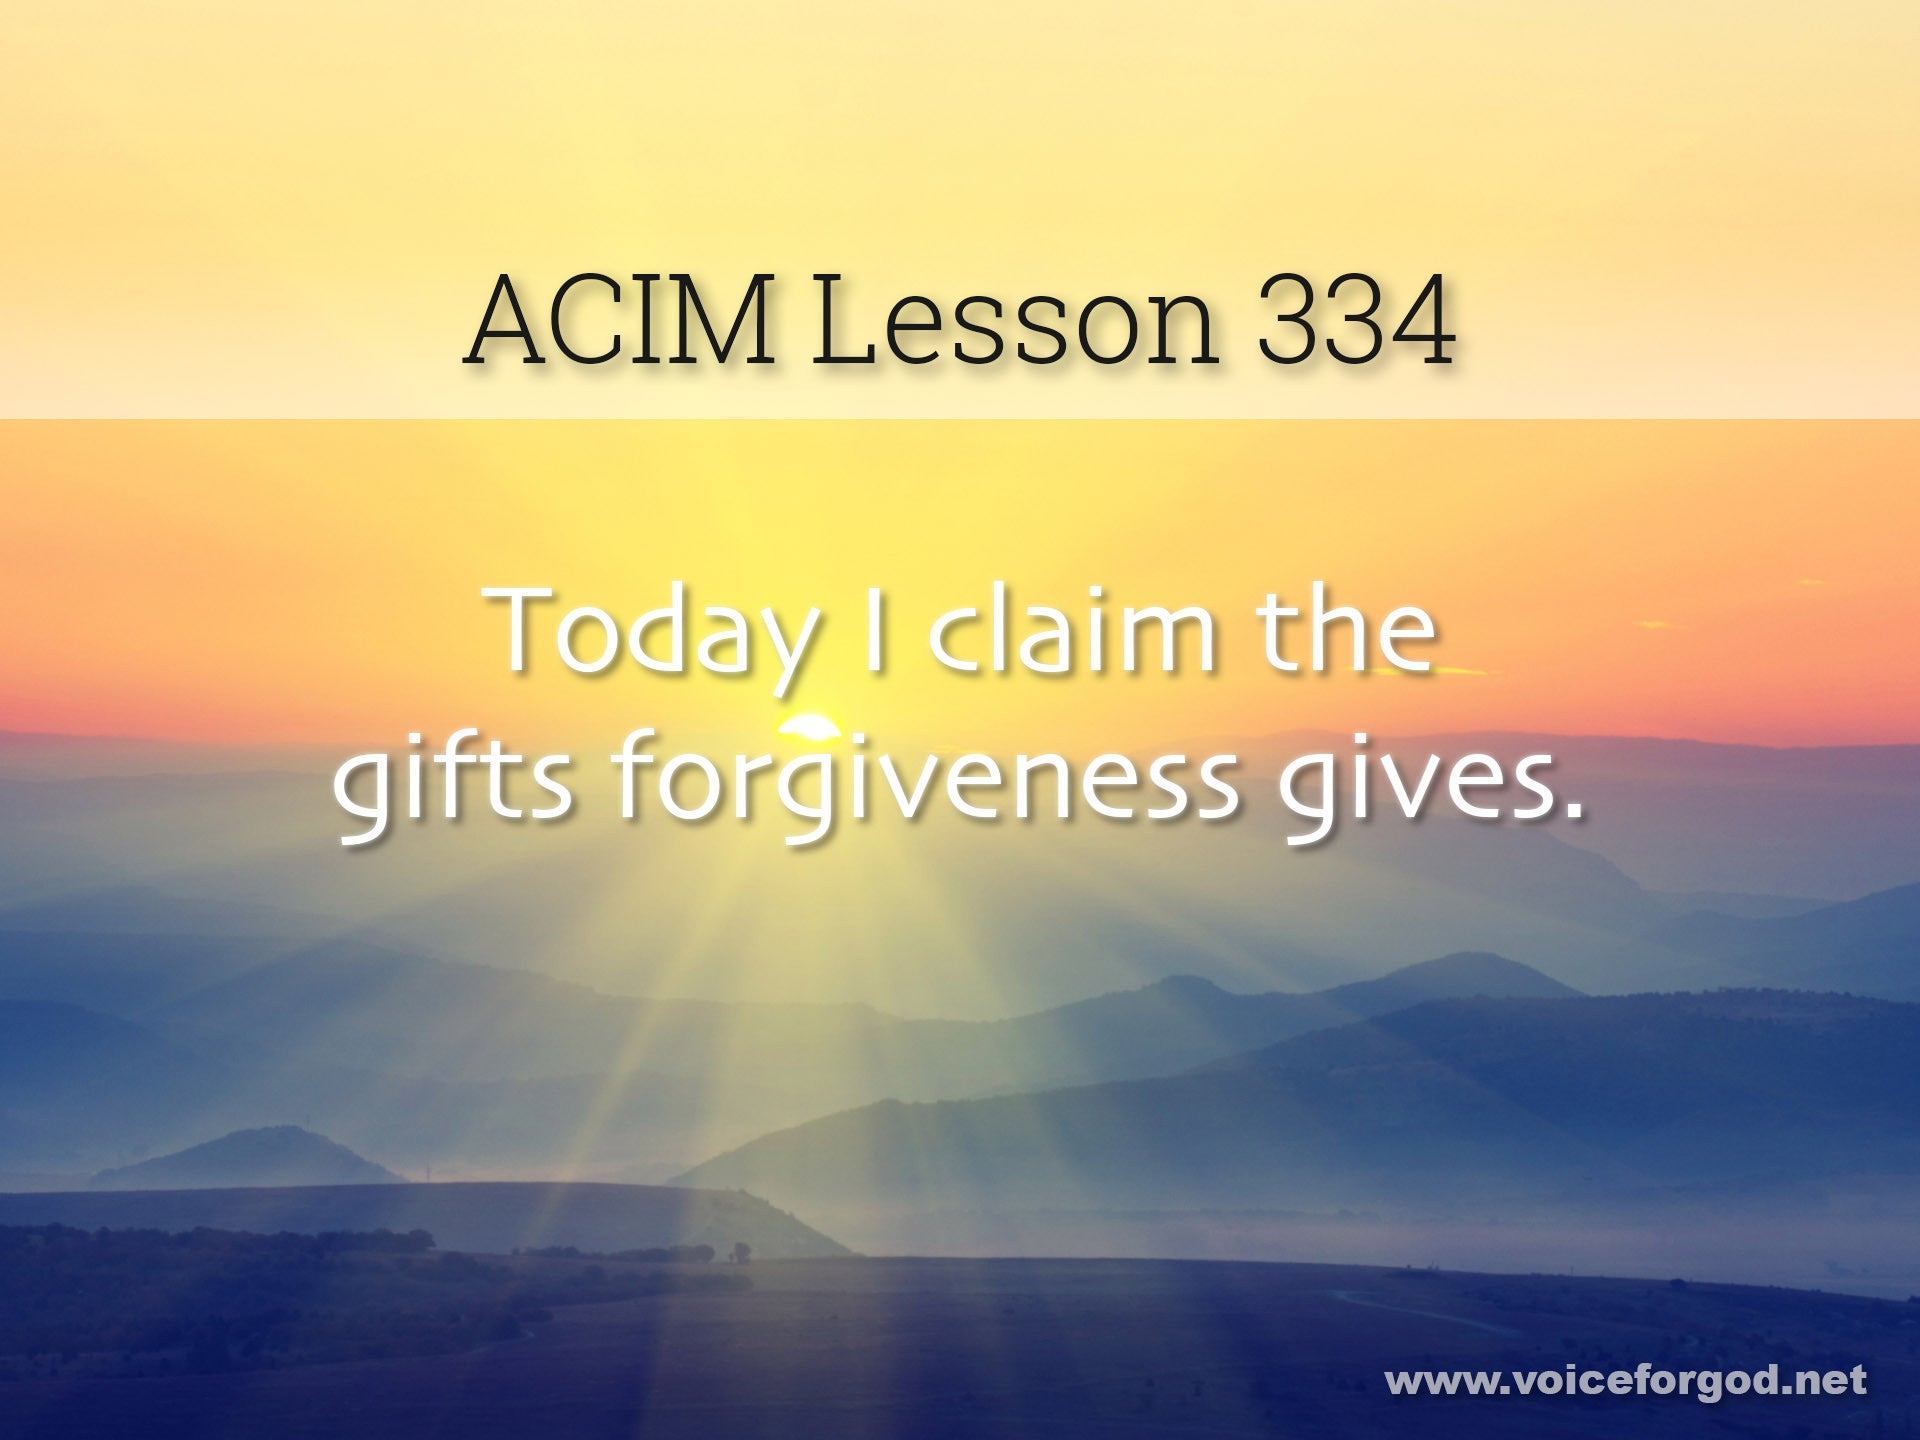 ACIM Lesson 334 - A Course in Miracles Workbook Lesson 334